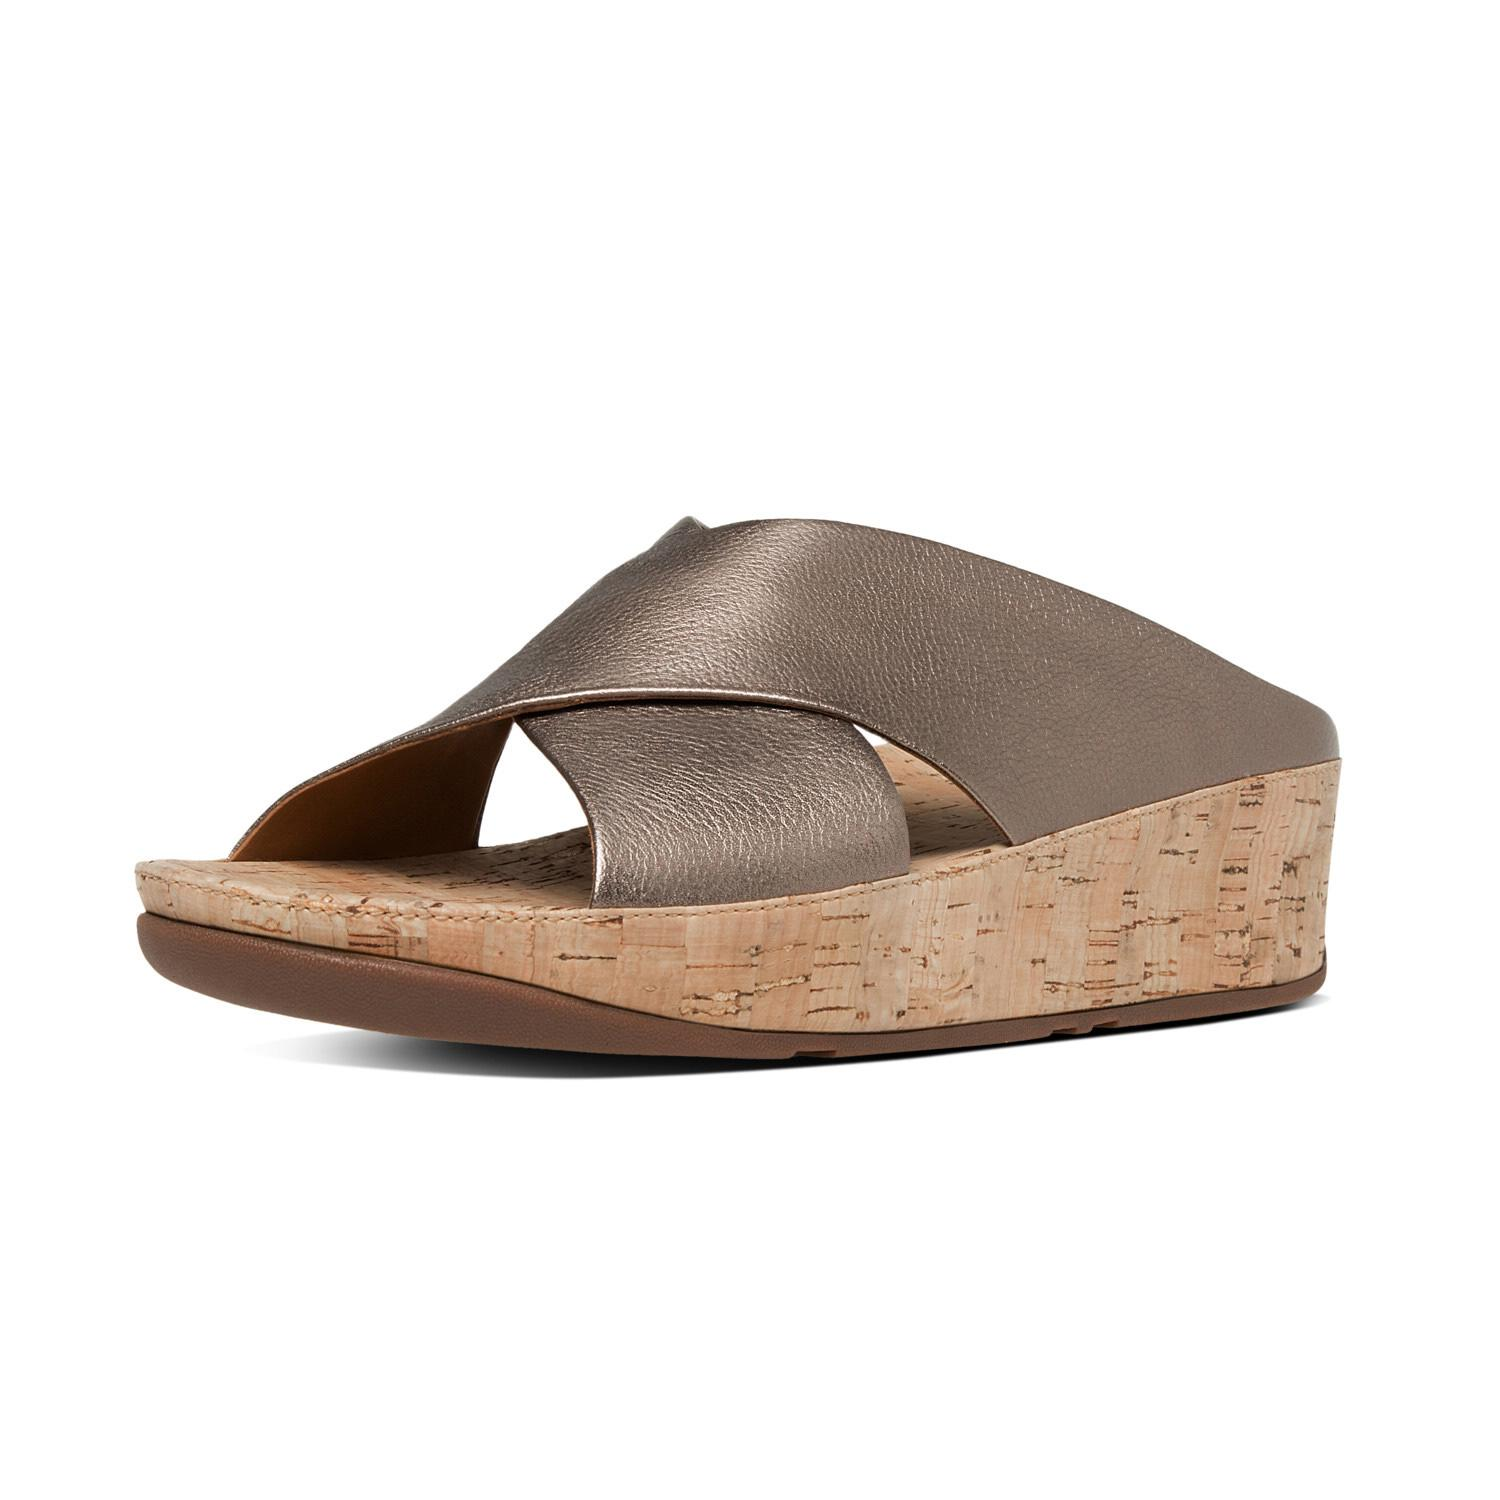 Whether youre looking for a fashion, casual, or performance sandal, our hand-picked collection offers you a range of styles and comfort options from the worlds best brands to match your individual comfort needs.